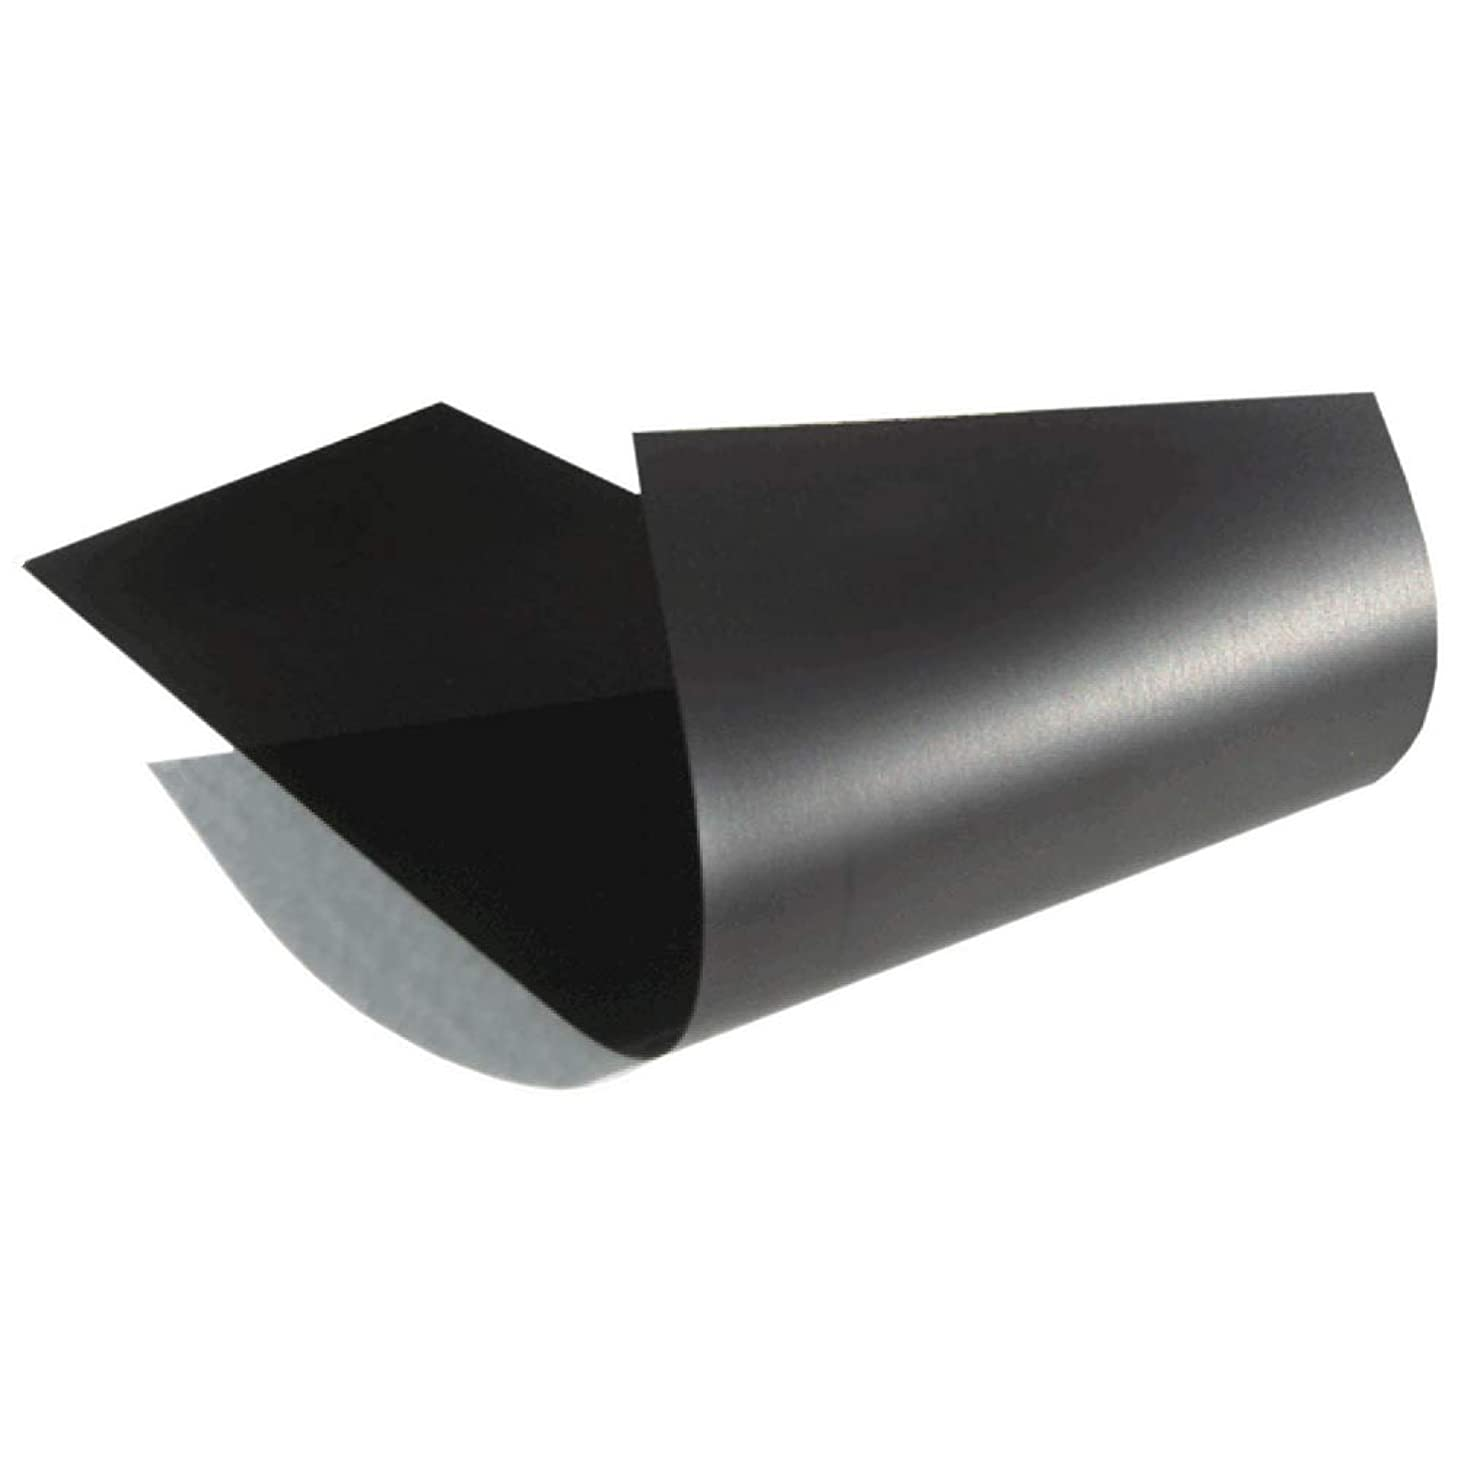 Magnetic Material Sheet 12 x 24-inch (.030 in. thick) Black Thin & Flexible for Magnetizing Bumper Sticker